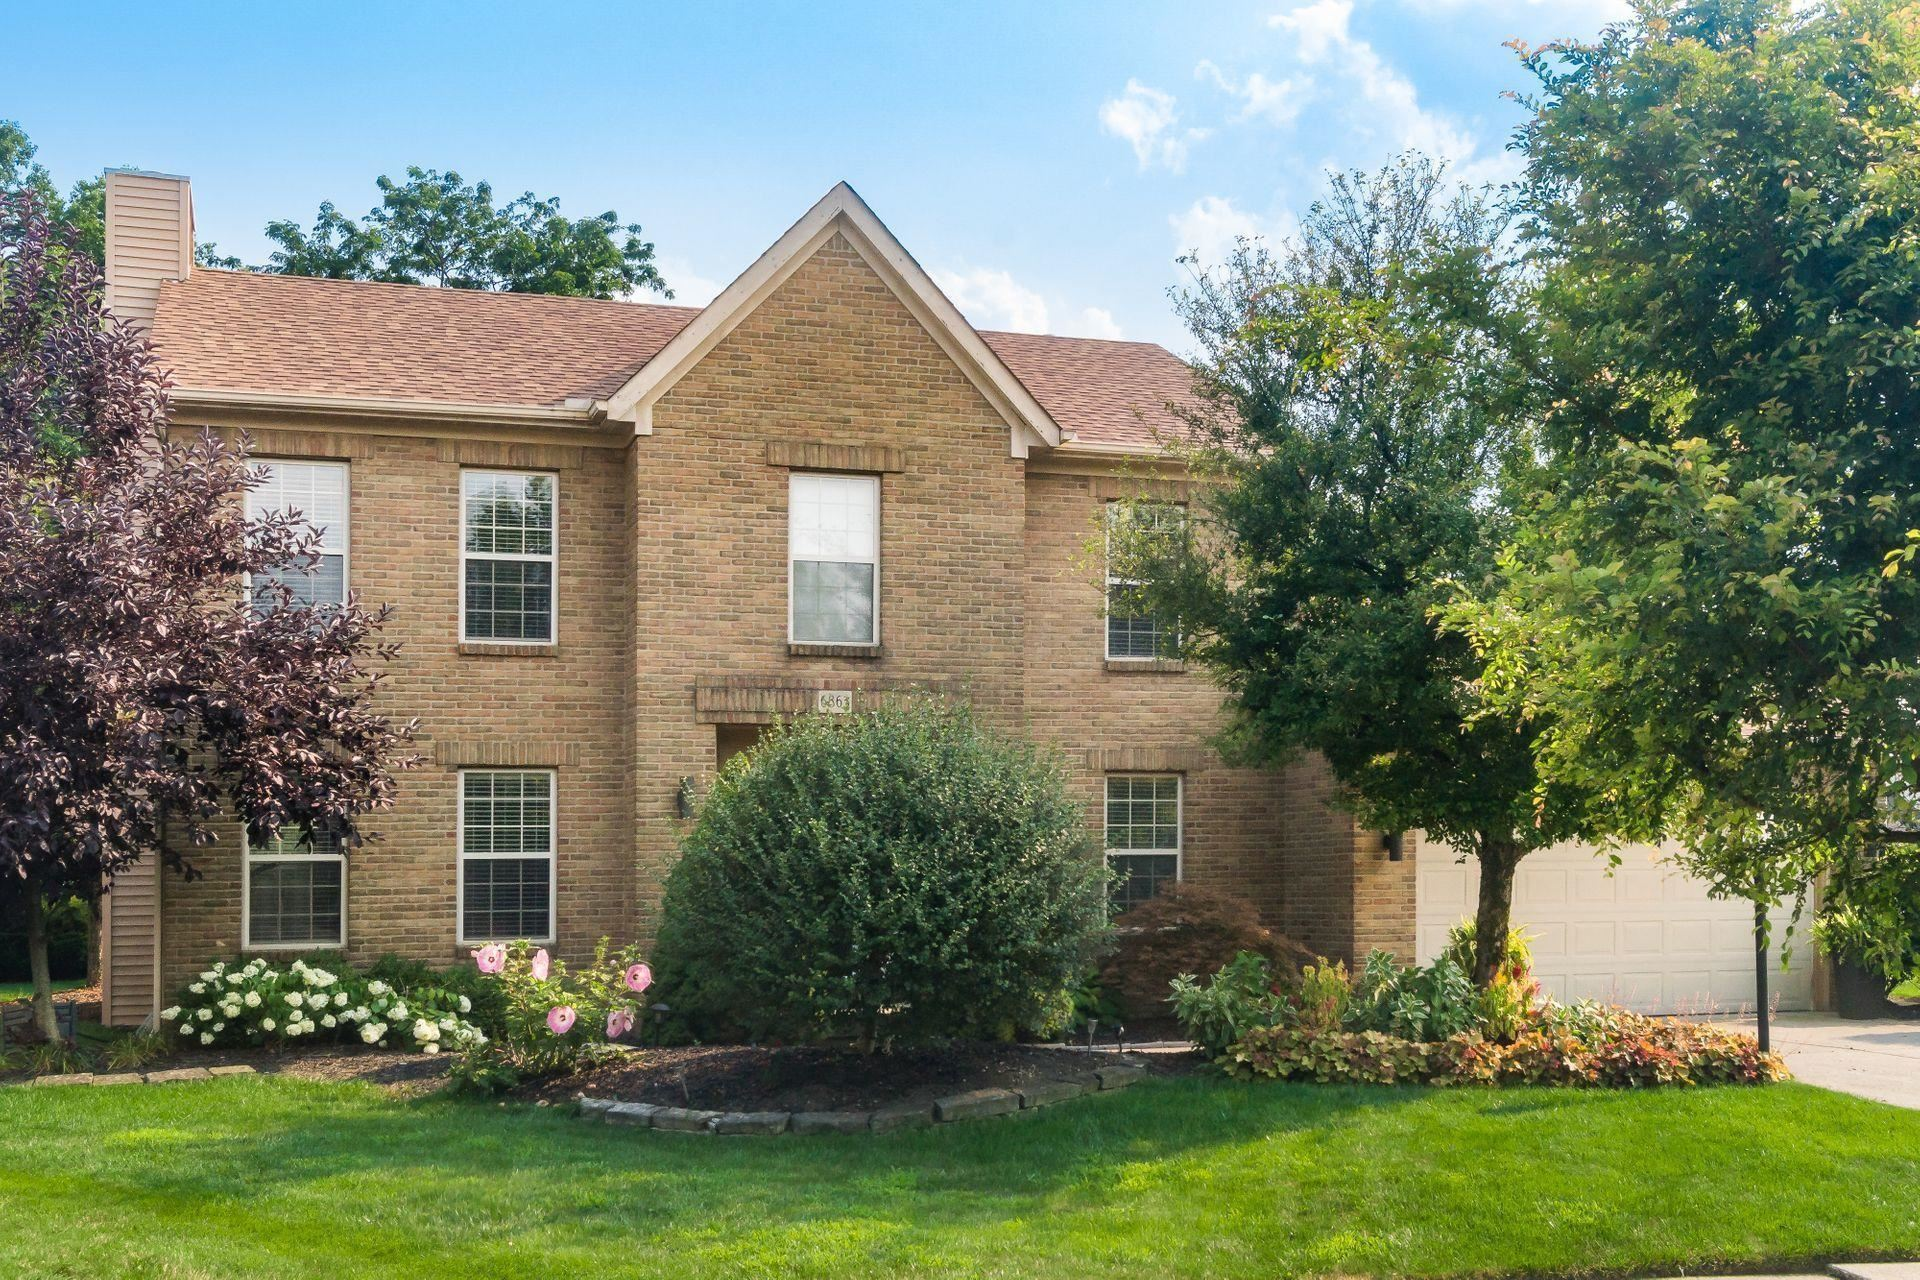 Photo of 6863 Bethany Drive, Westerville, OH 43081 (MLS # 221029069)